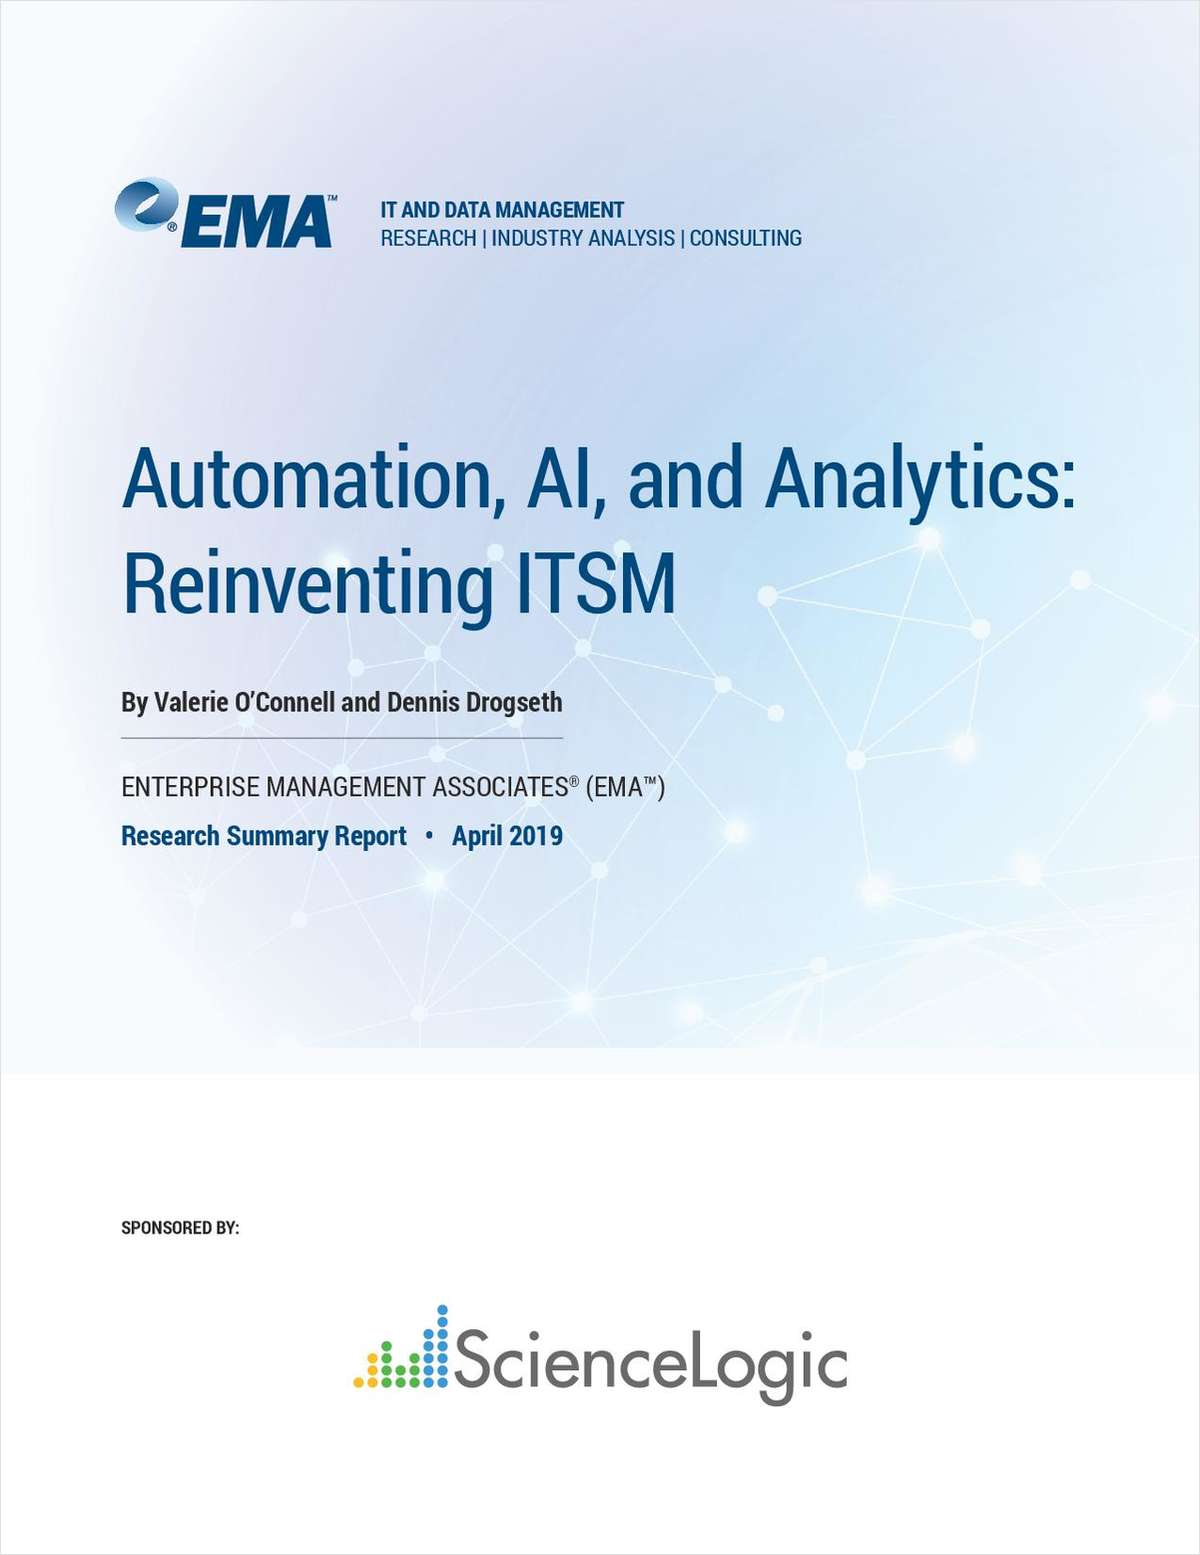 Automation, AI, and Analytics: Reinventing ITSM